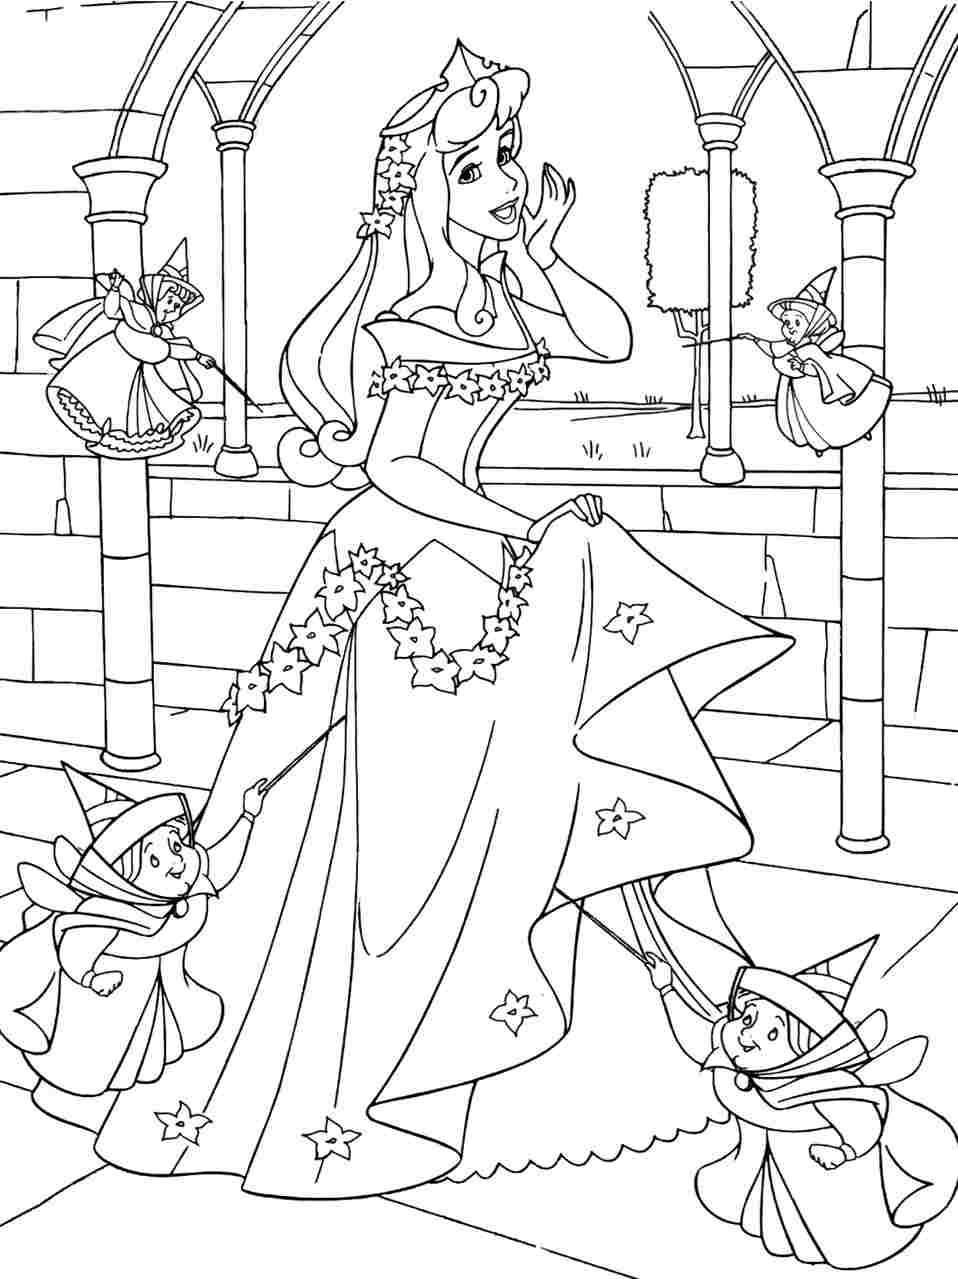 sleeping beauty coloring pages sleeping beauty coloring pages sleeping pages coloring beauty